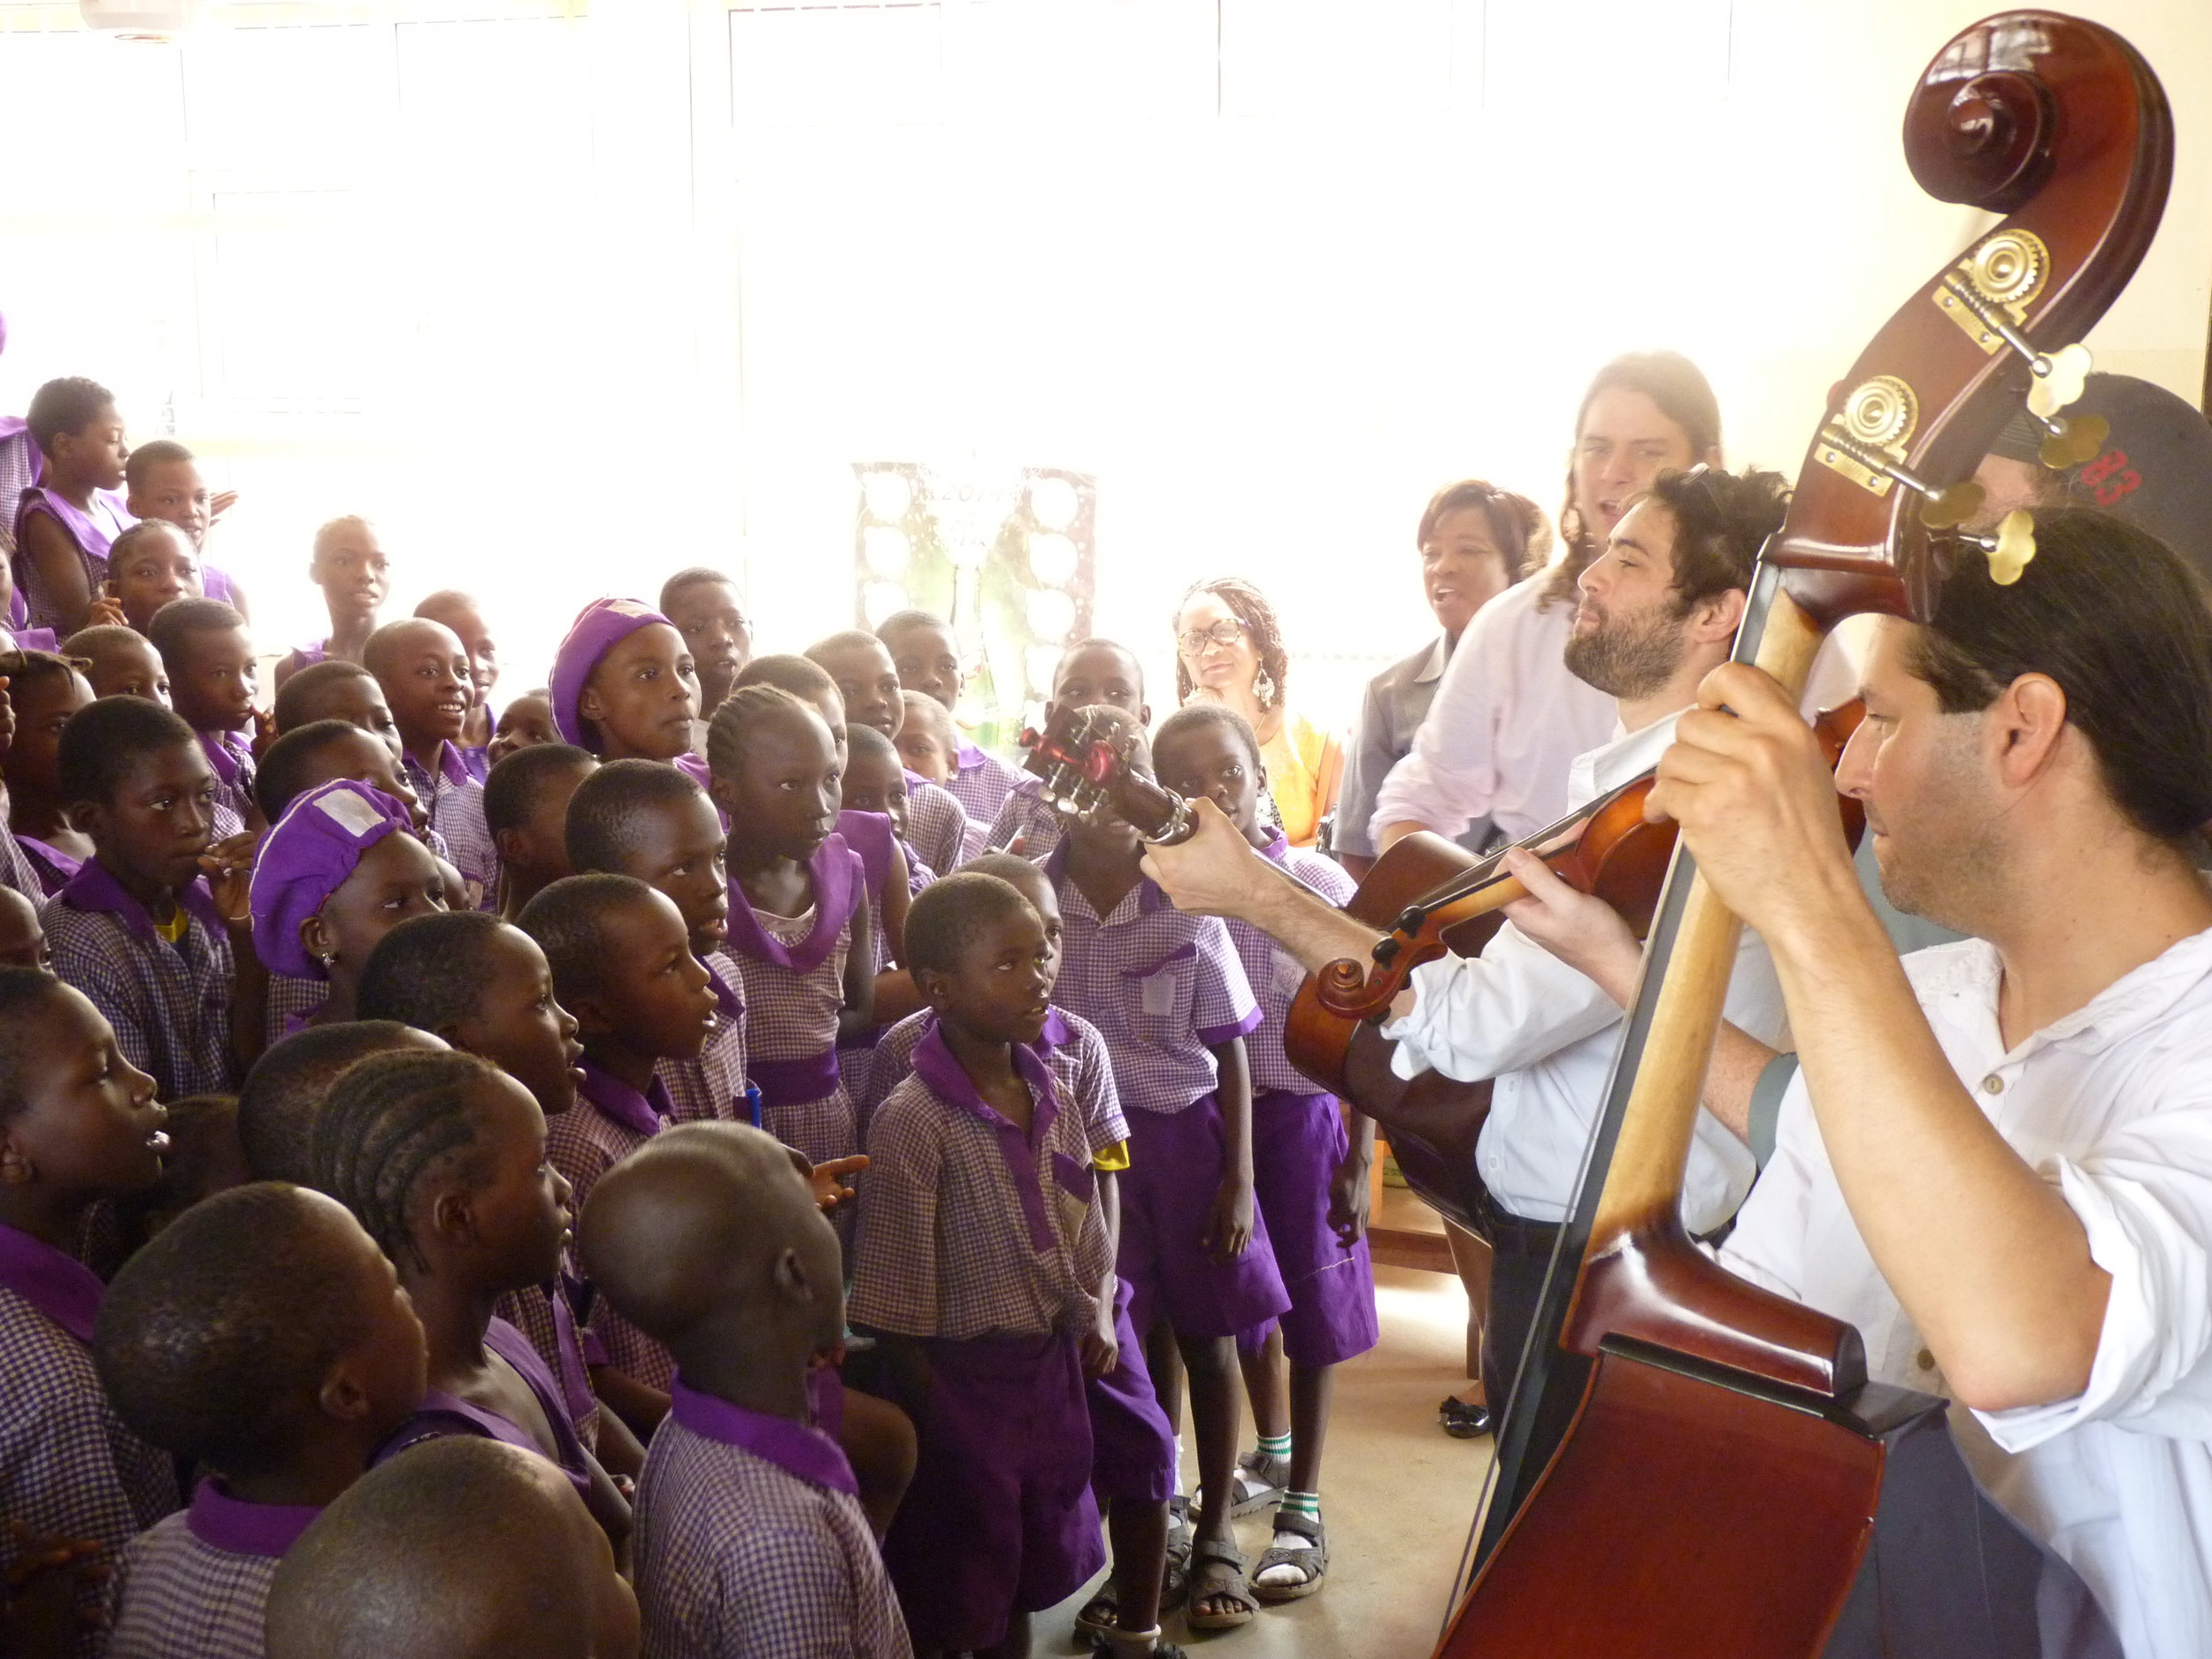 Each classroom had around 30 students and the band would do 15 minute workshops, running room to room.